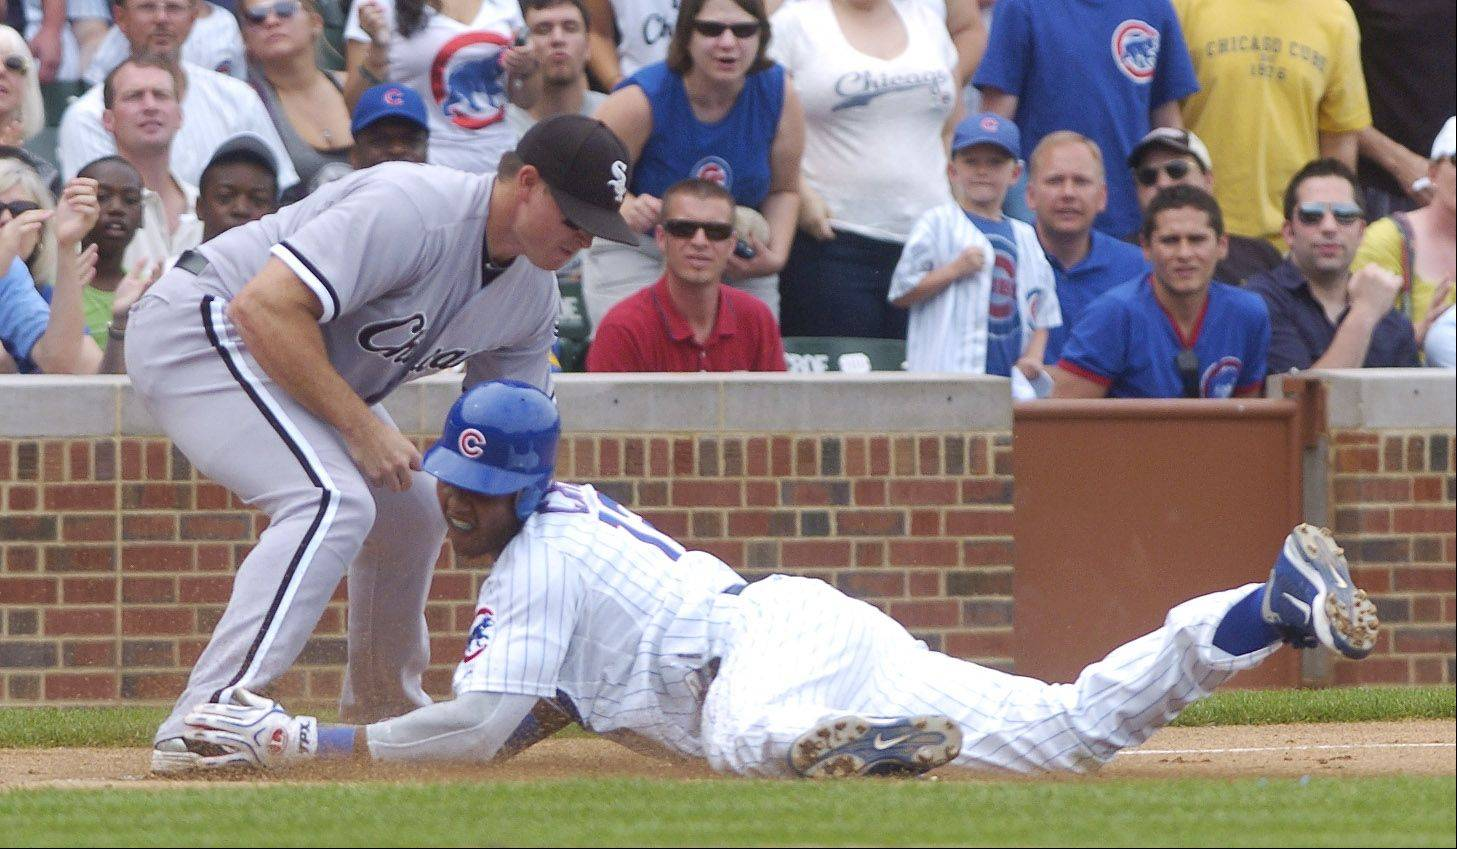 The Cubs' Starlin Castro is called safe on a close play for a fourth-inning triple as White Sox third baseman Mark Teahen applies the late tag Sunday.